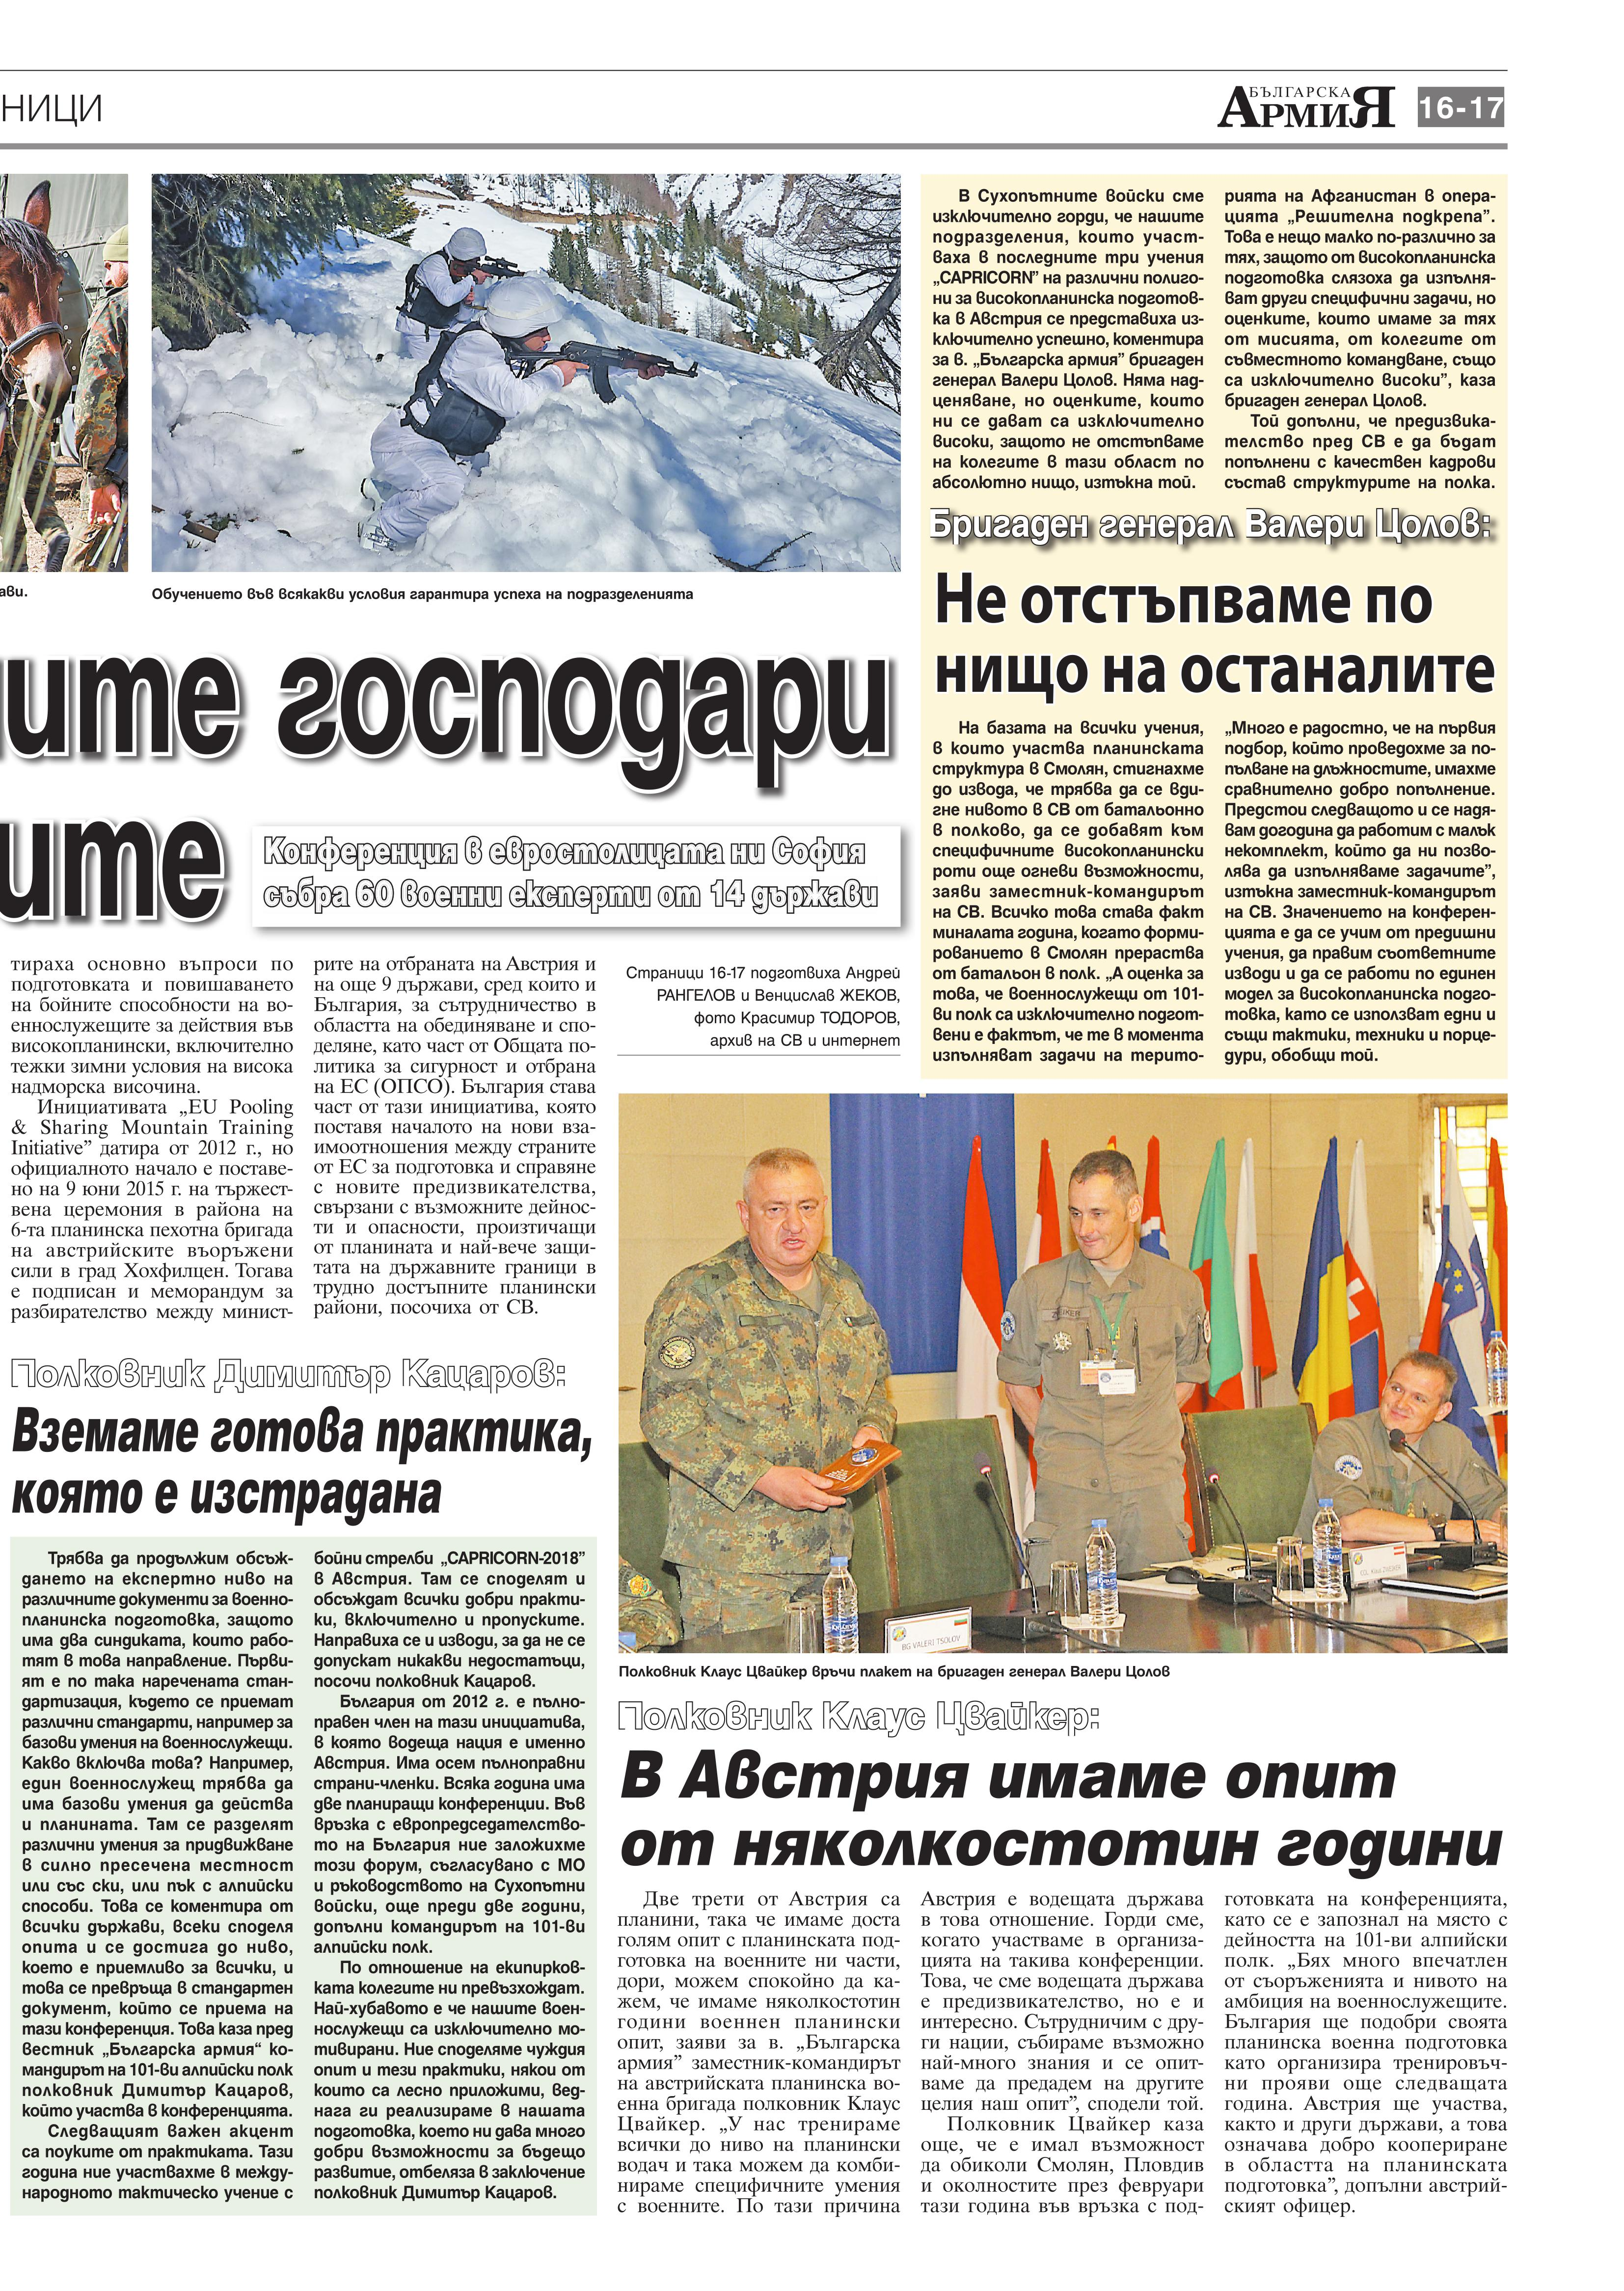 http://armymedia.bg/wp-content/uploads/2015/06/17.page1_-51.jpg